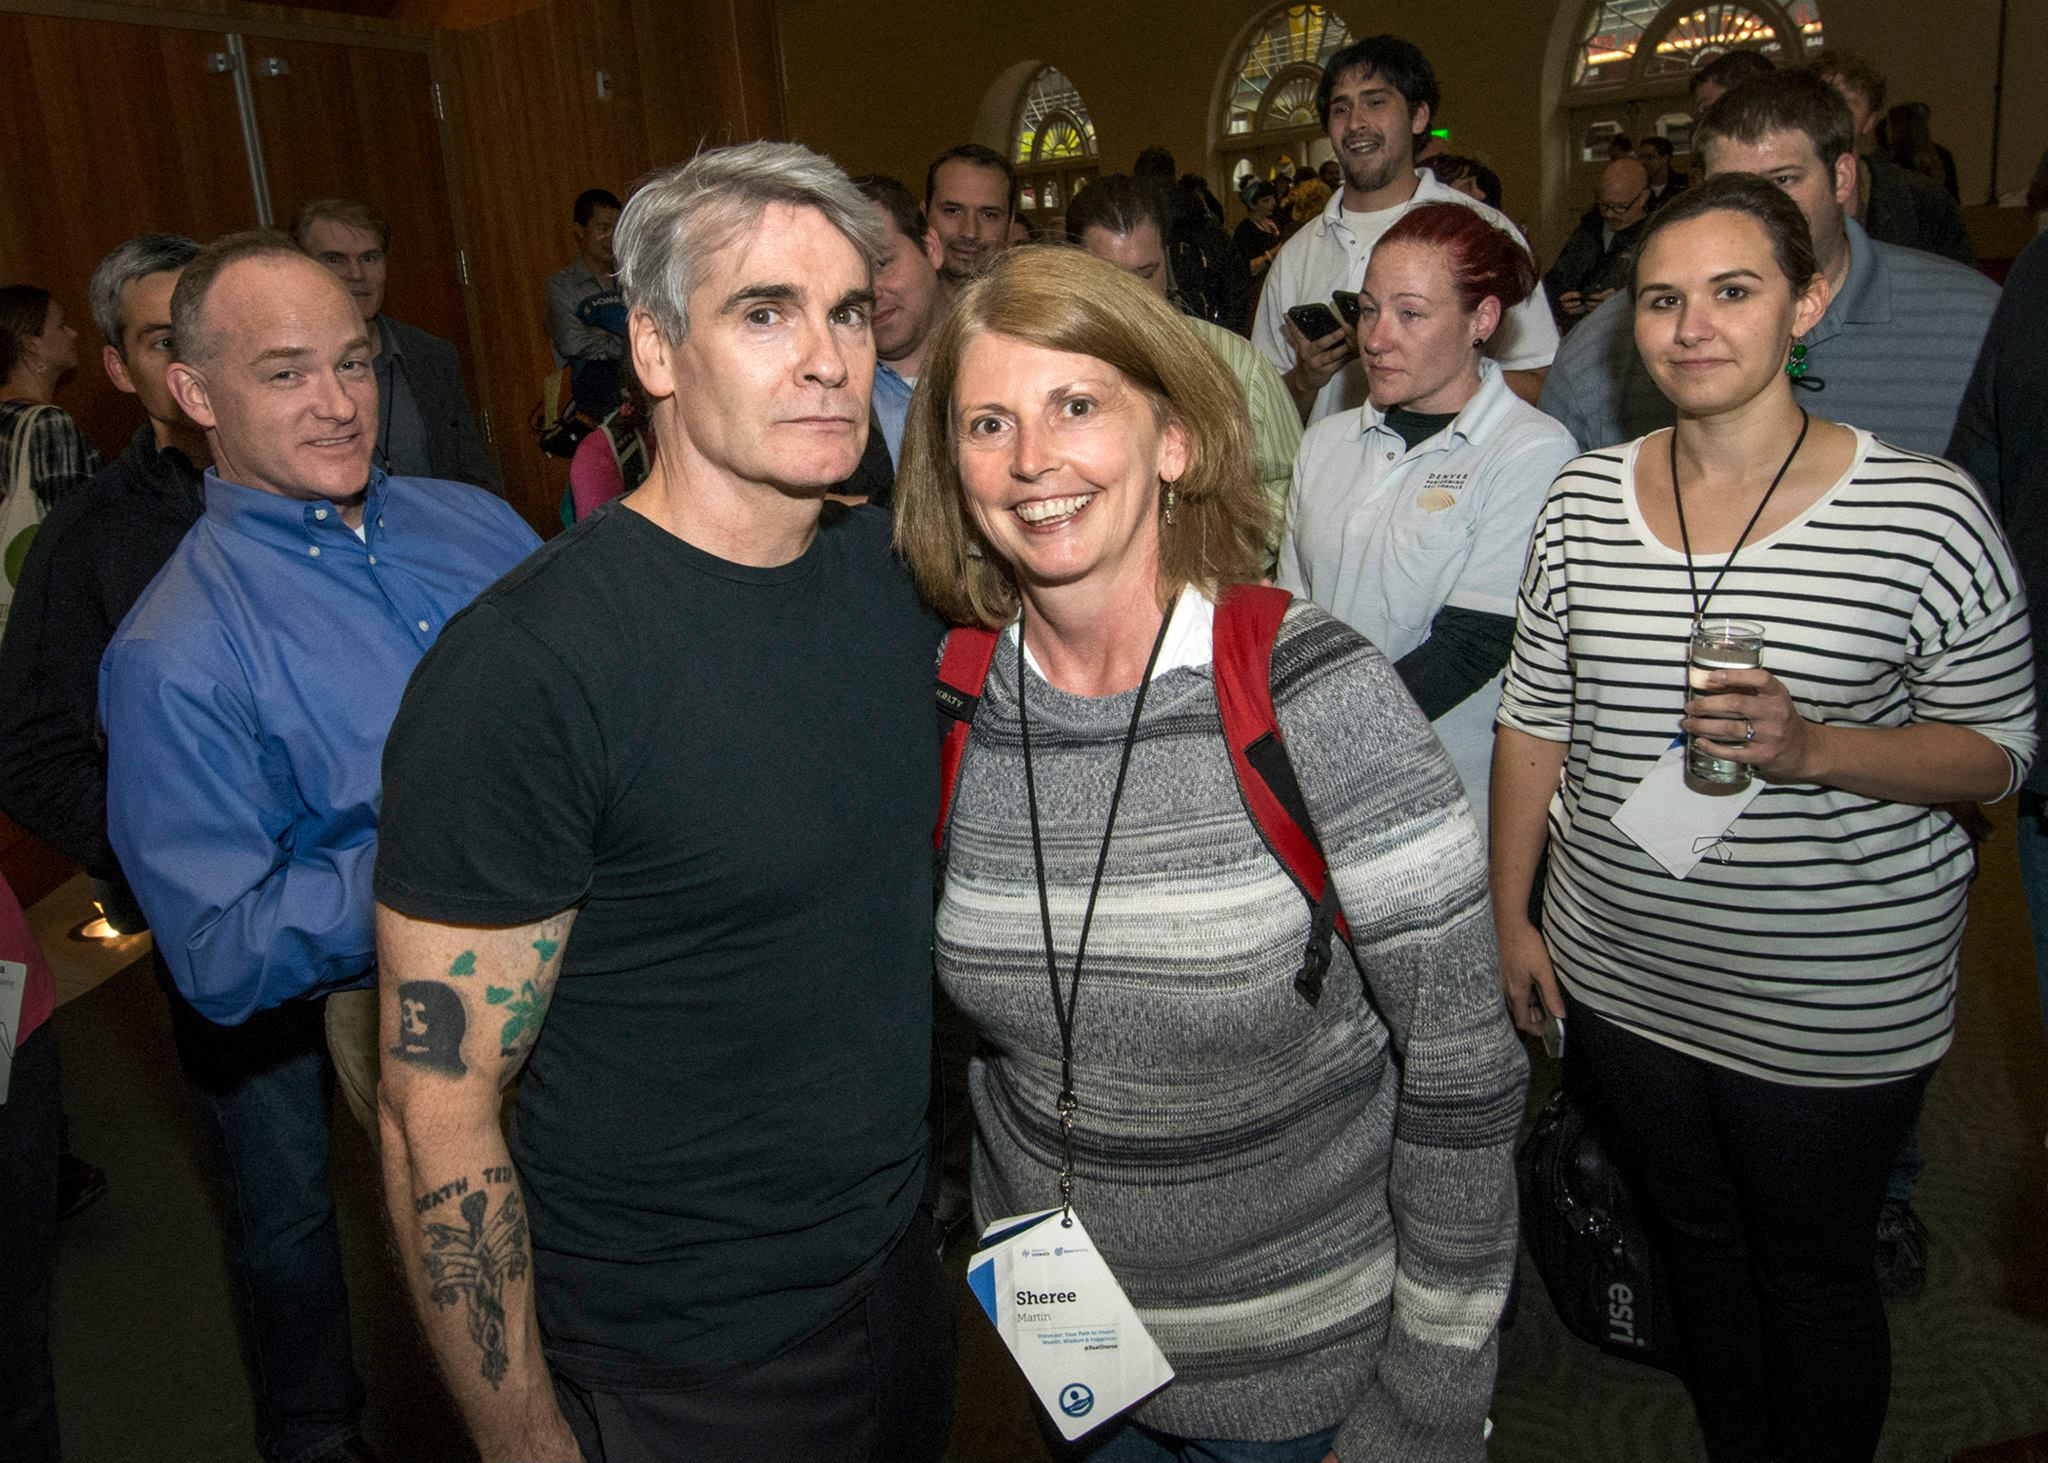 Rainmaker Authority 2015 Sheree Martin and Henry Rollins, photo by Brad Crooks